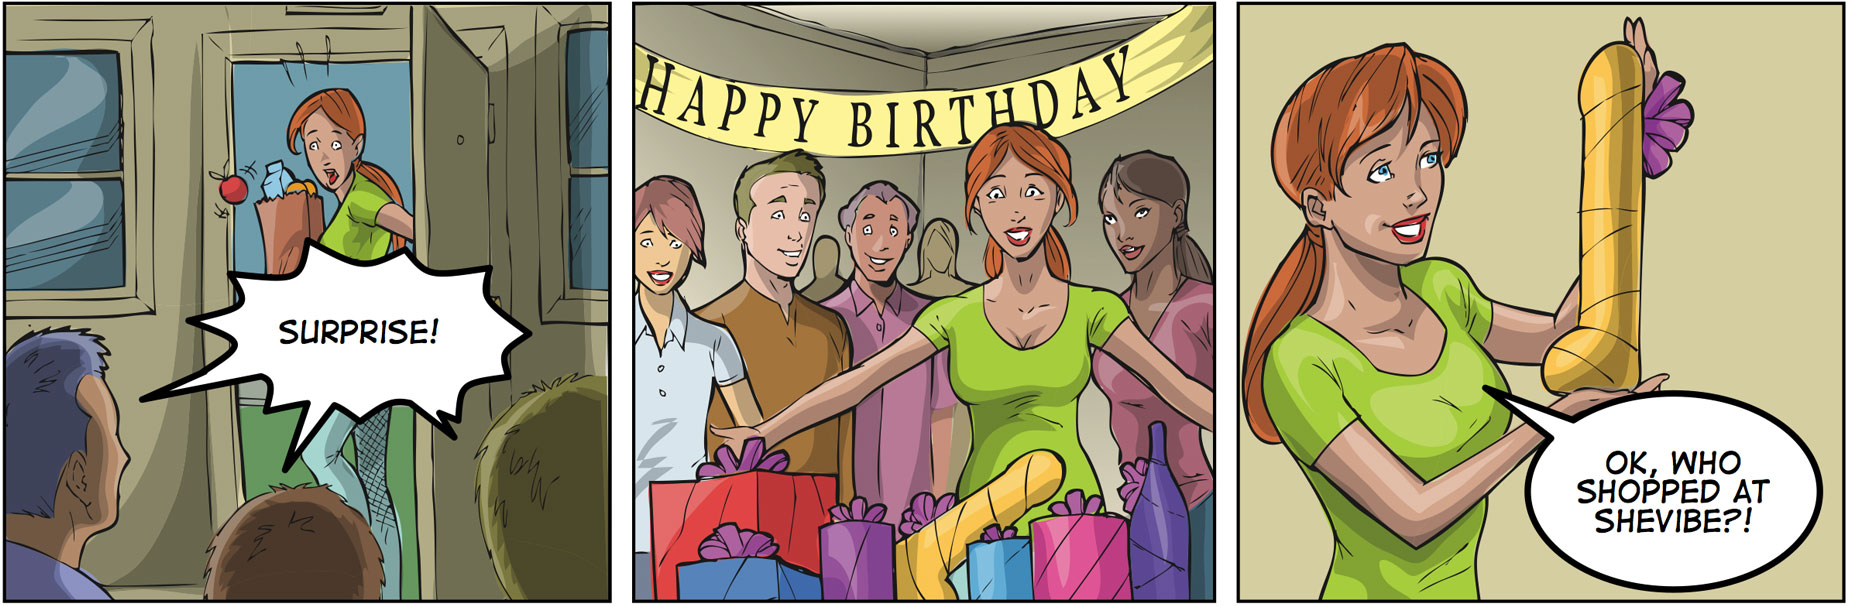 Real sister birthday surprise free porn comix online